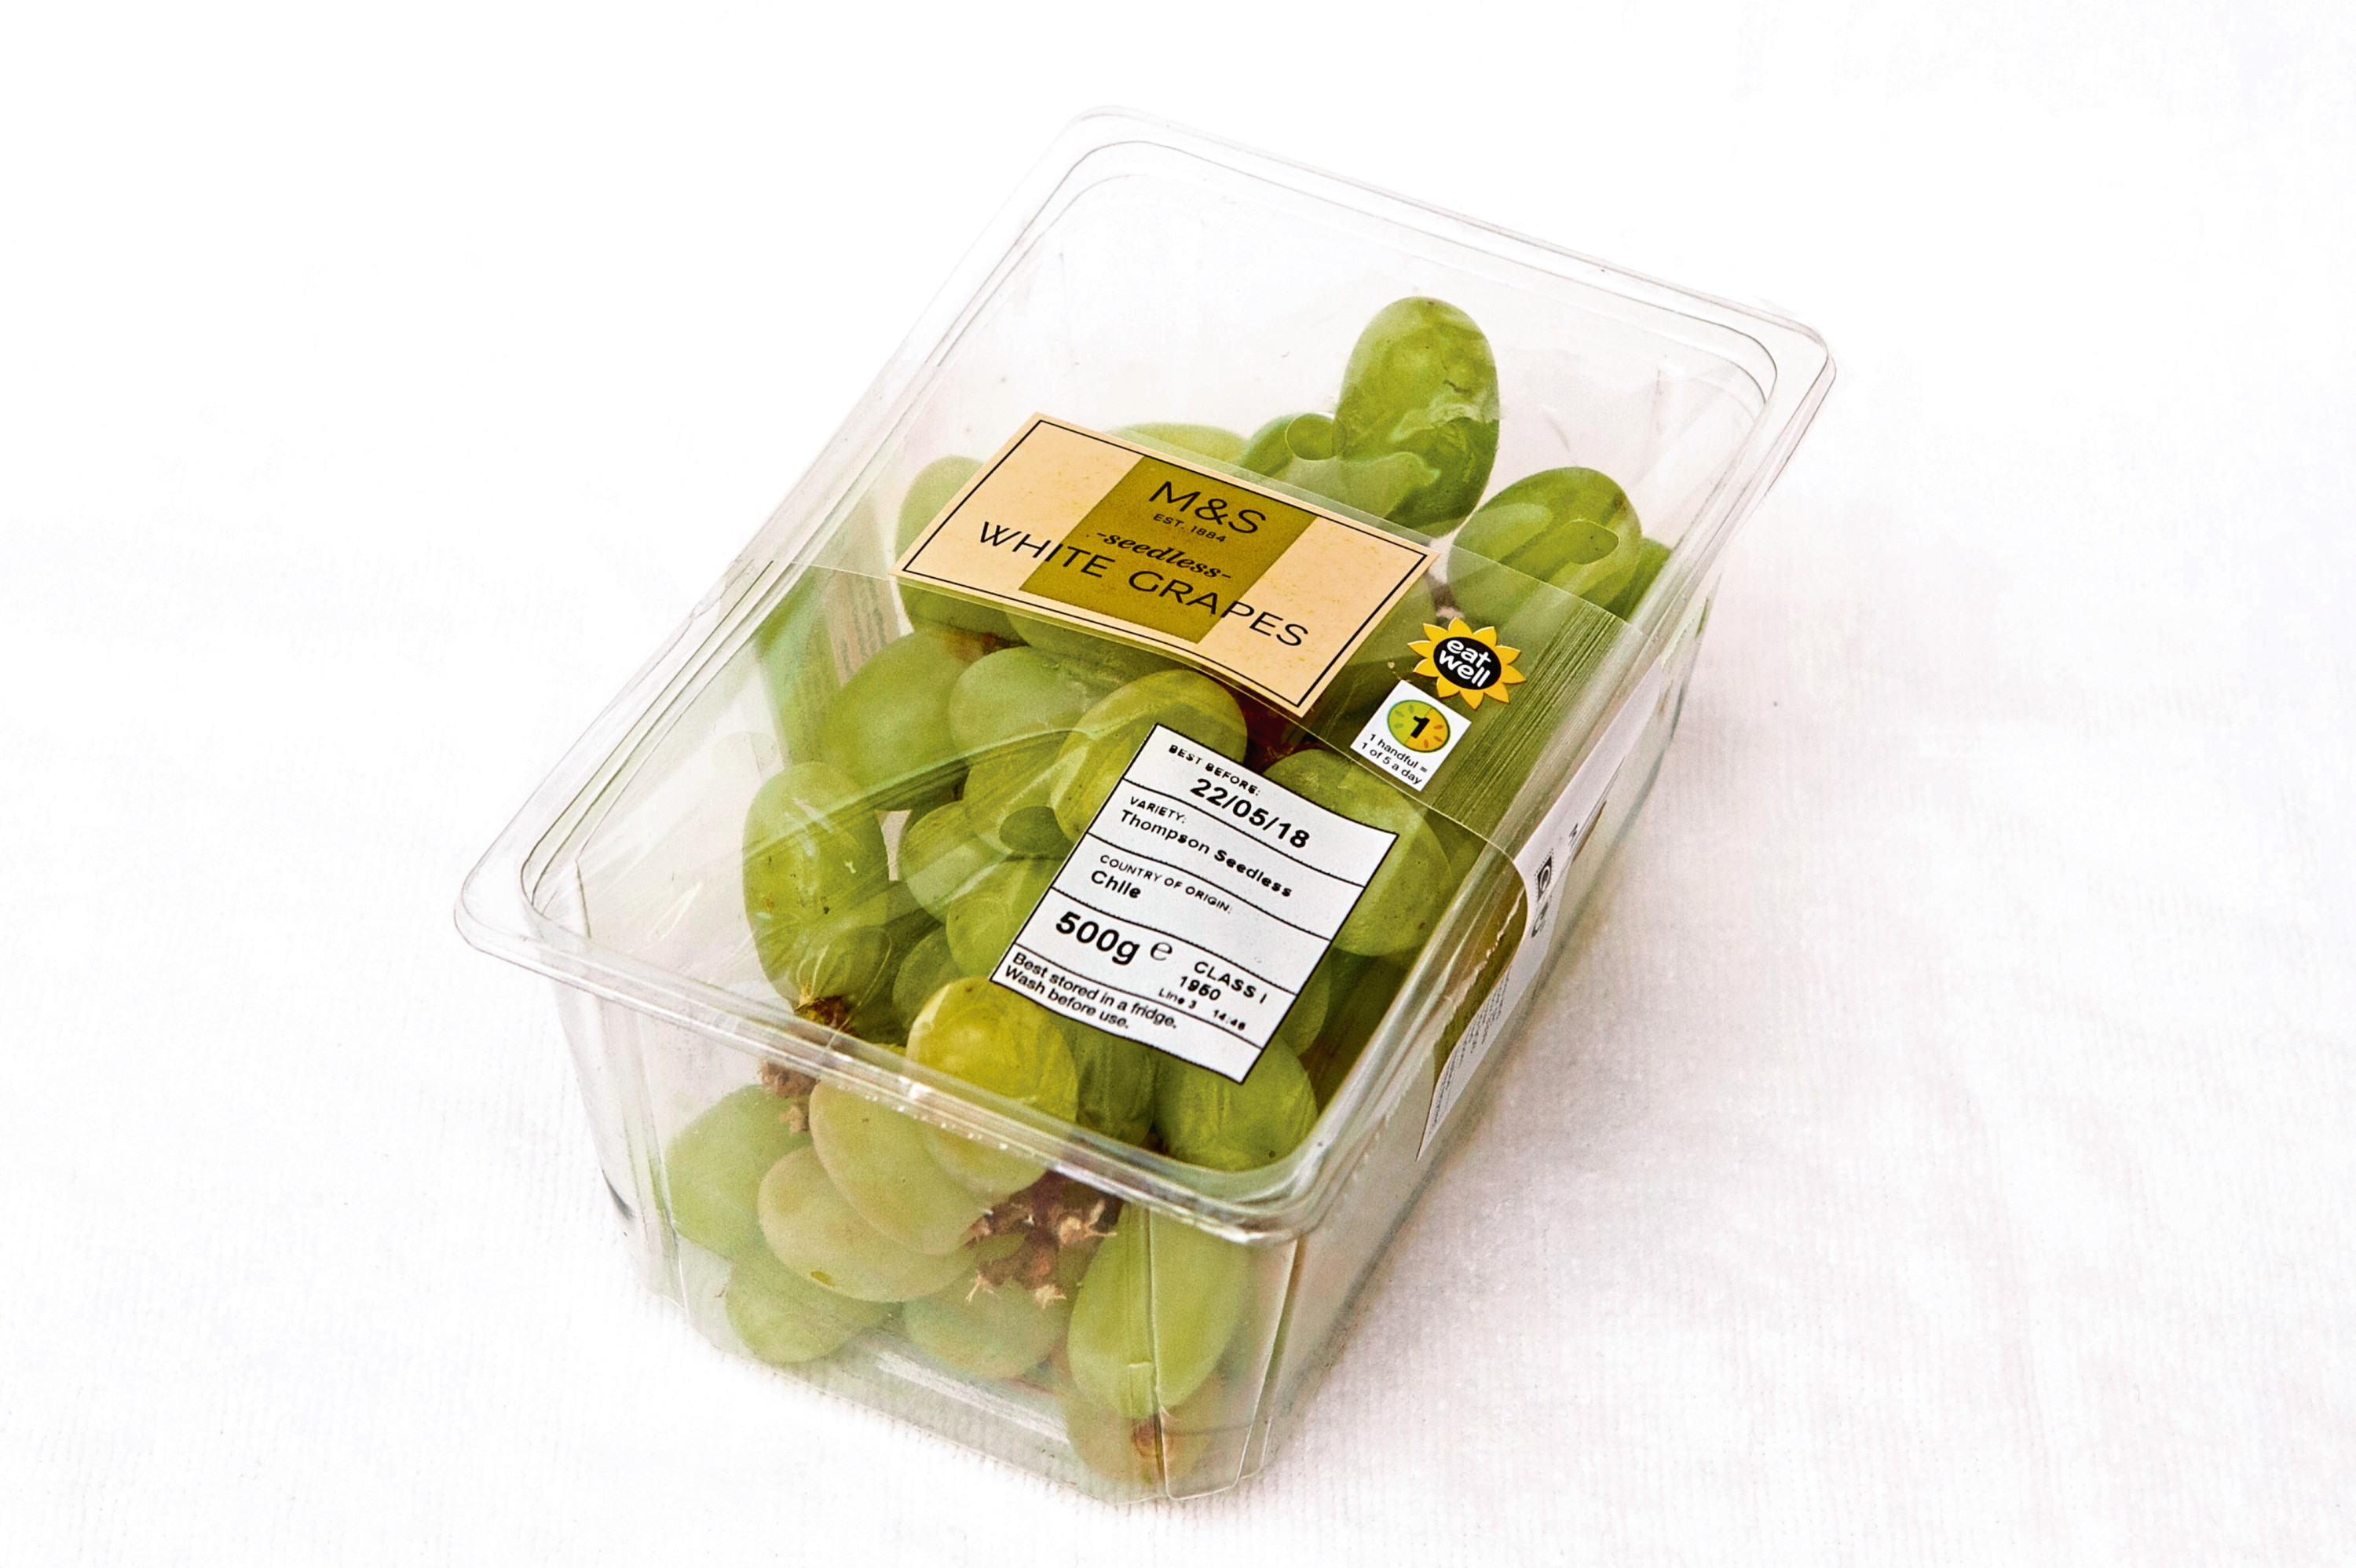 These grapes cost £2.80 in a hospital shop compared to £2.75 on the high street